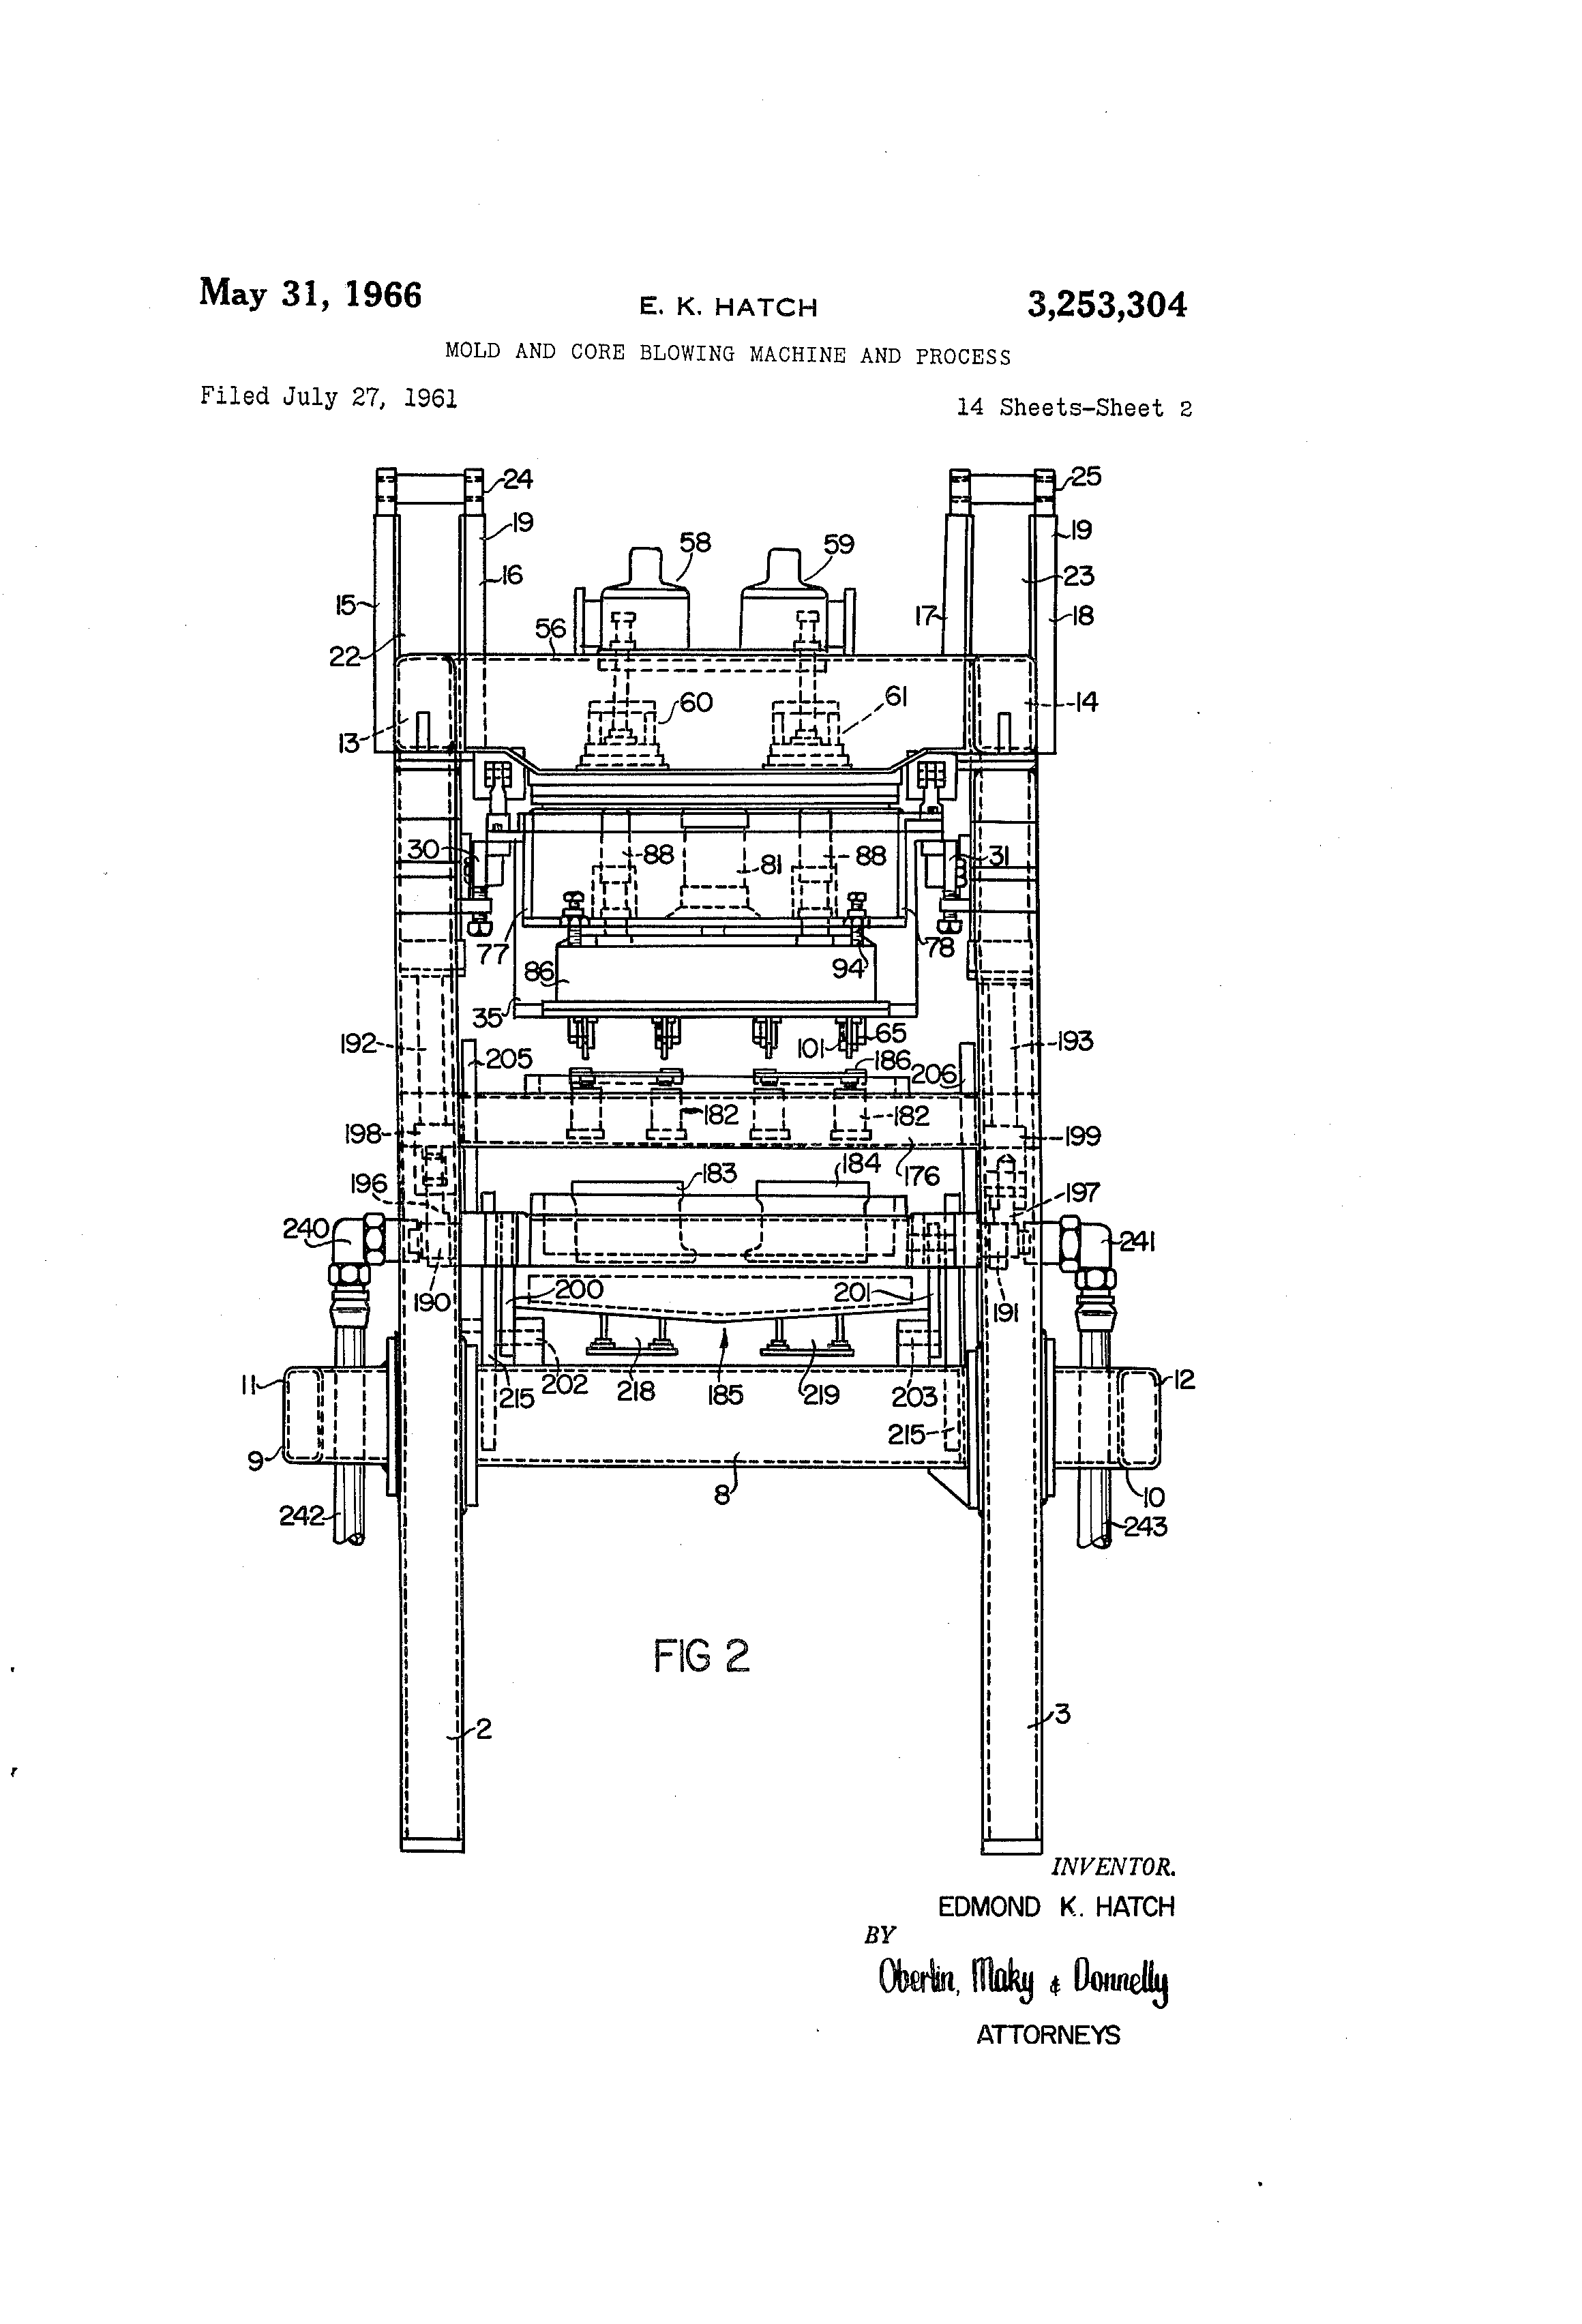 US3253304 1 patent us3253304 mold and core blowing machine and process  at love-stories.co